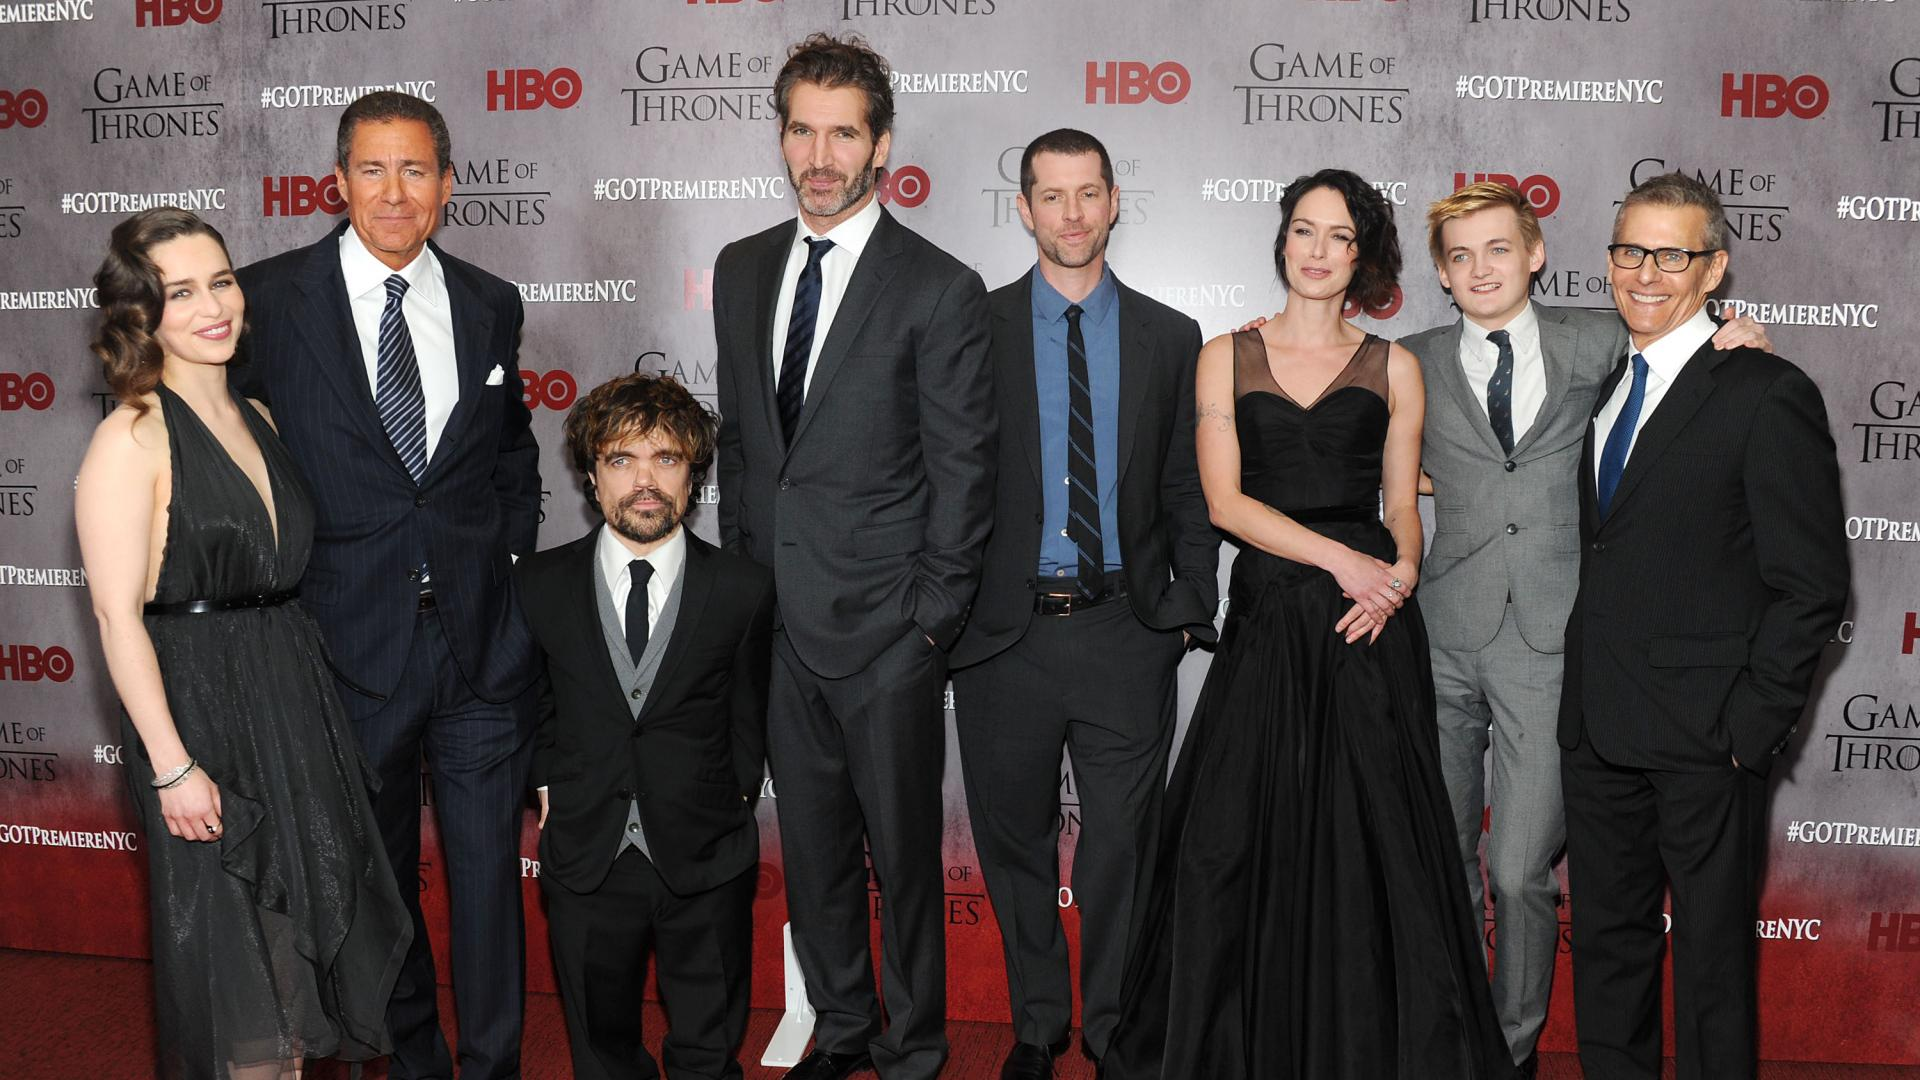 Hd Hintergrundbilder Hbo Game Of Thrones Besetzung Game Of Thrones